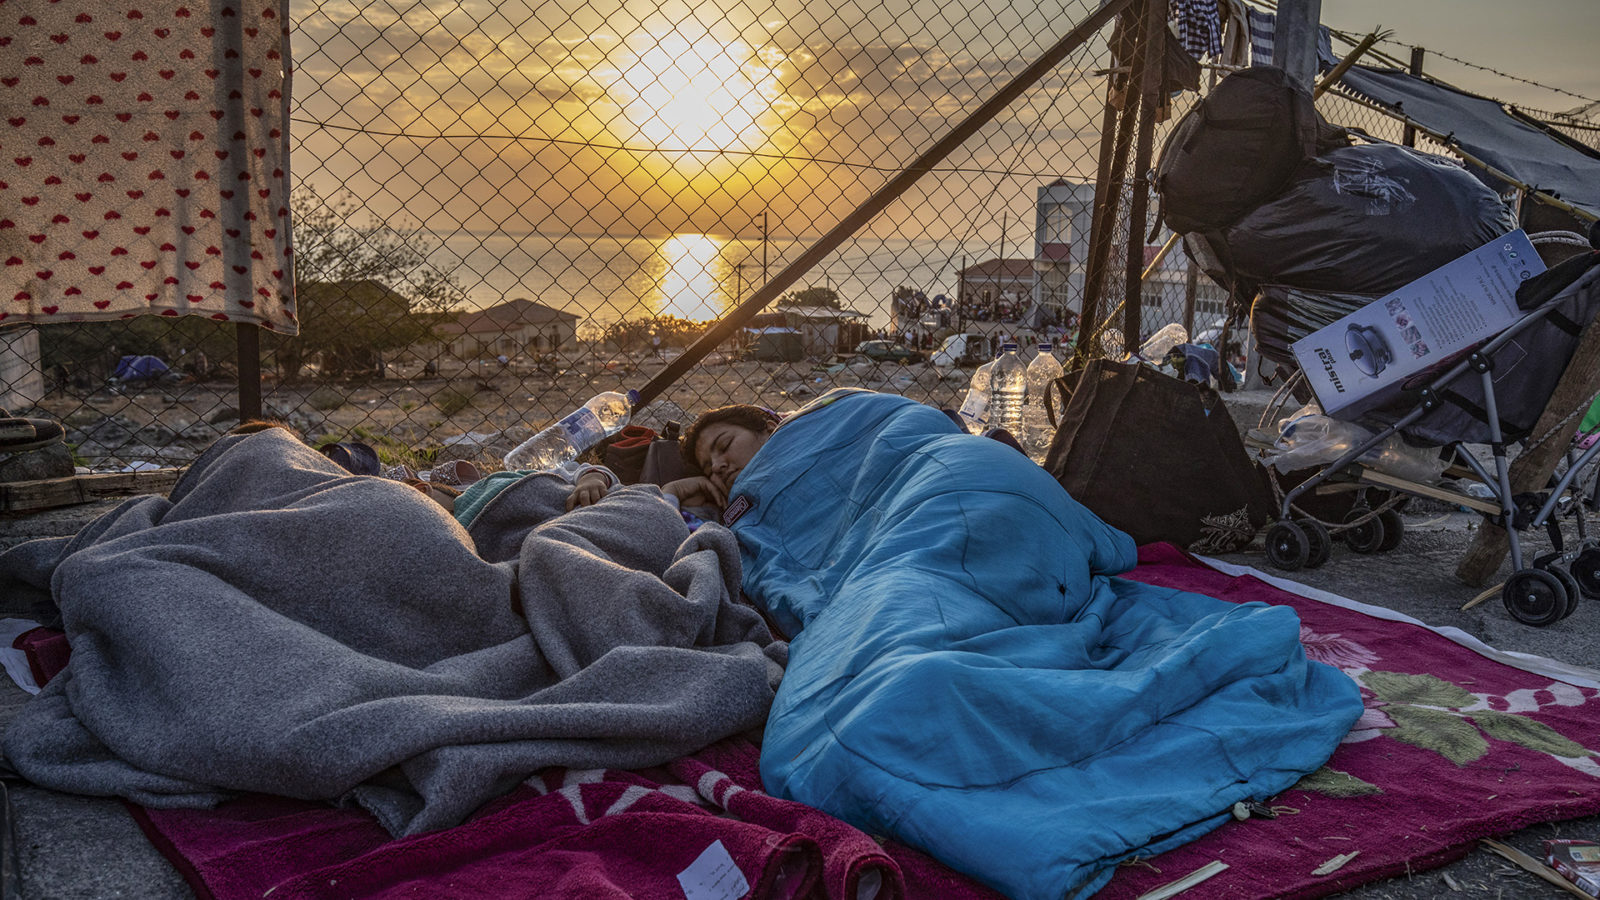 The Living Conditions For The Migrants At Lesvos